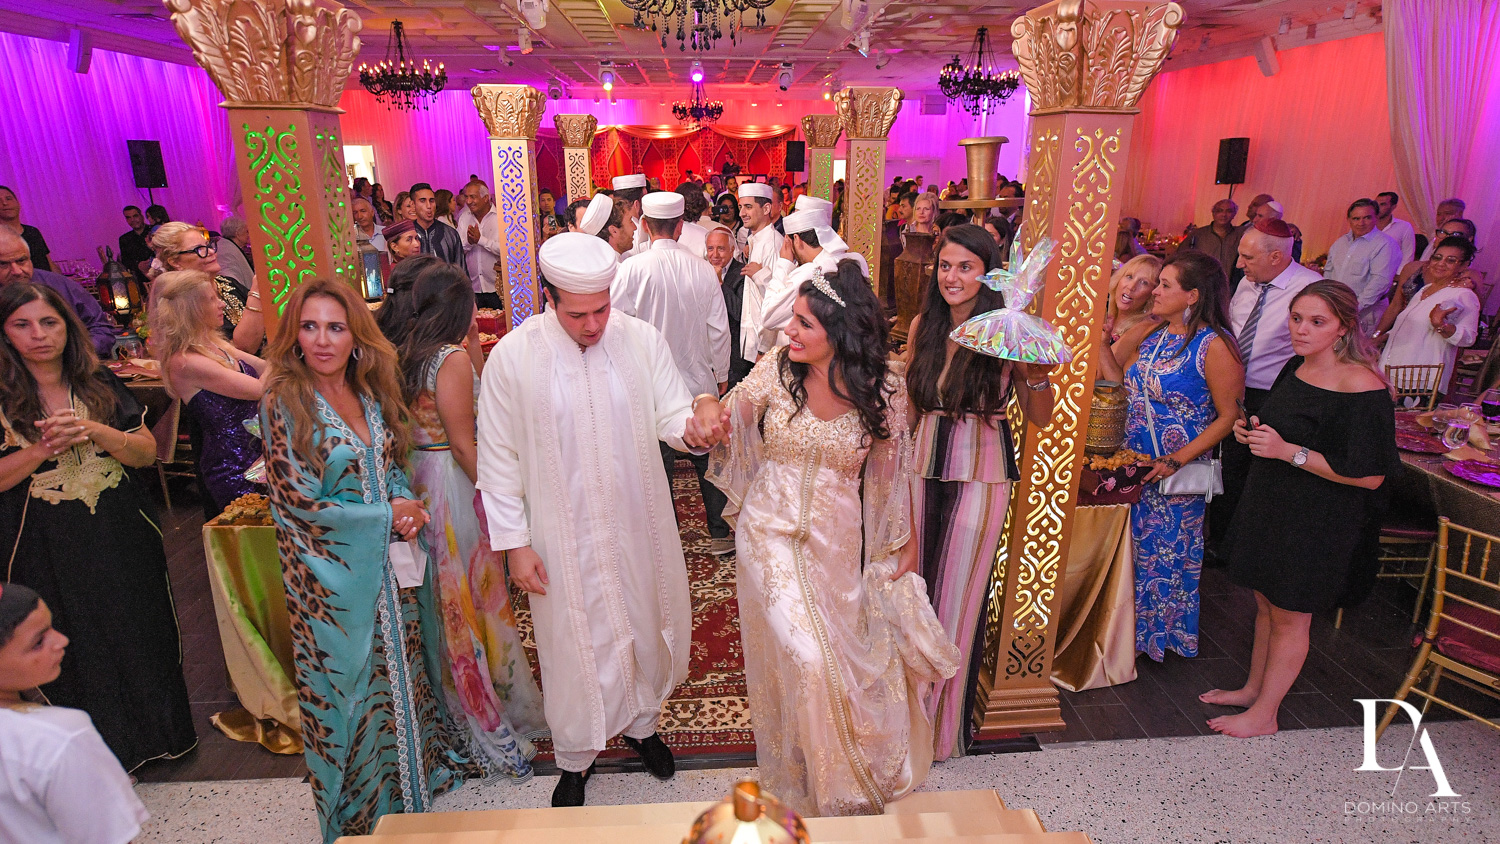 wedding ceremony at Authentic Morrocan Jewish Henna Party by Domino Arts Photography